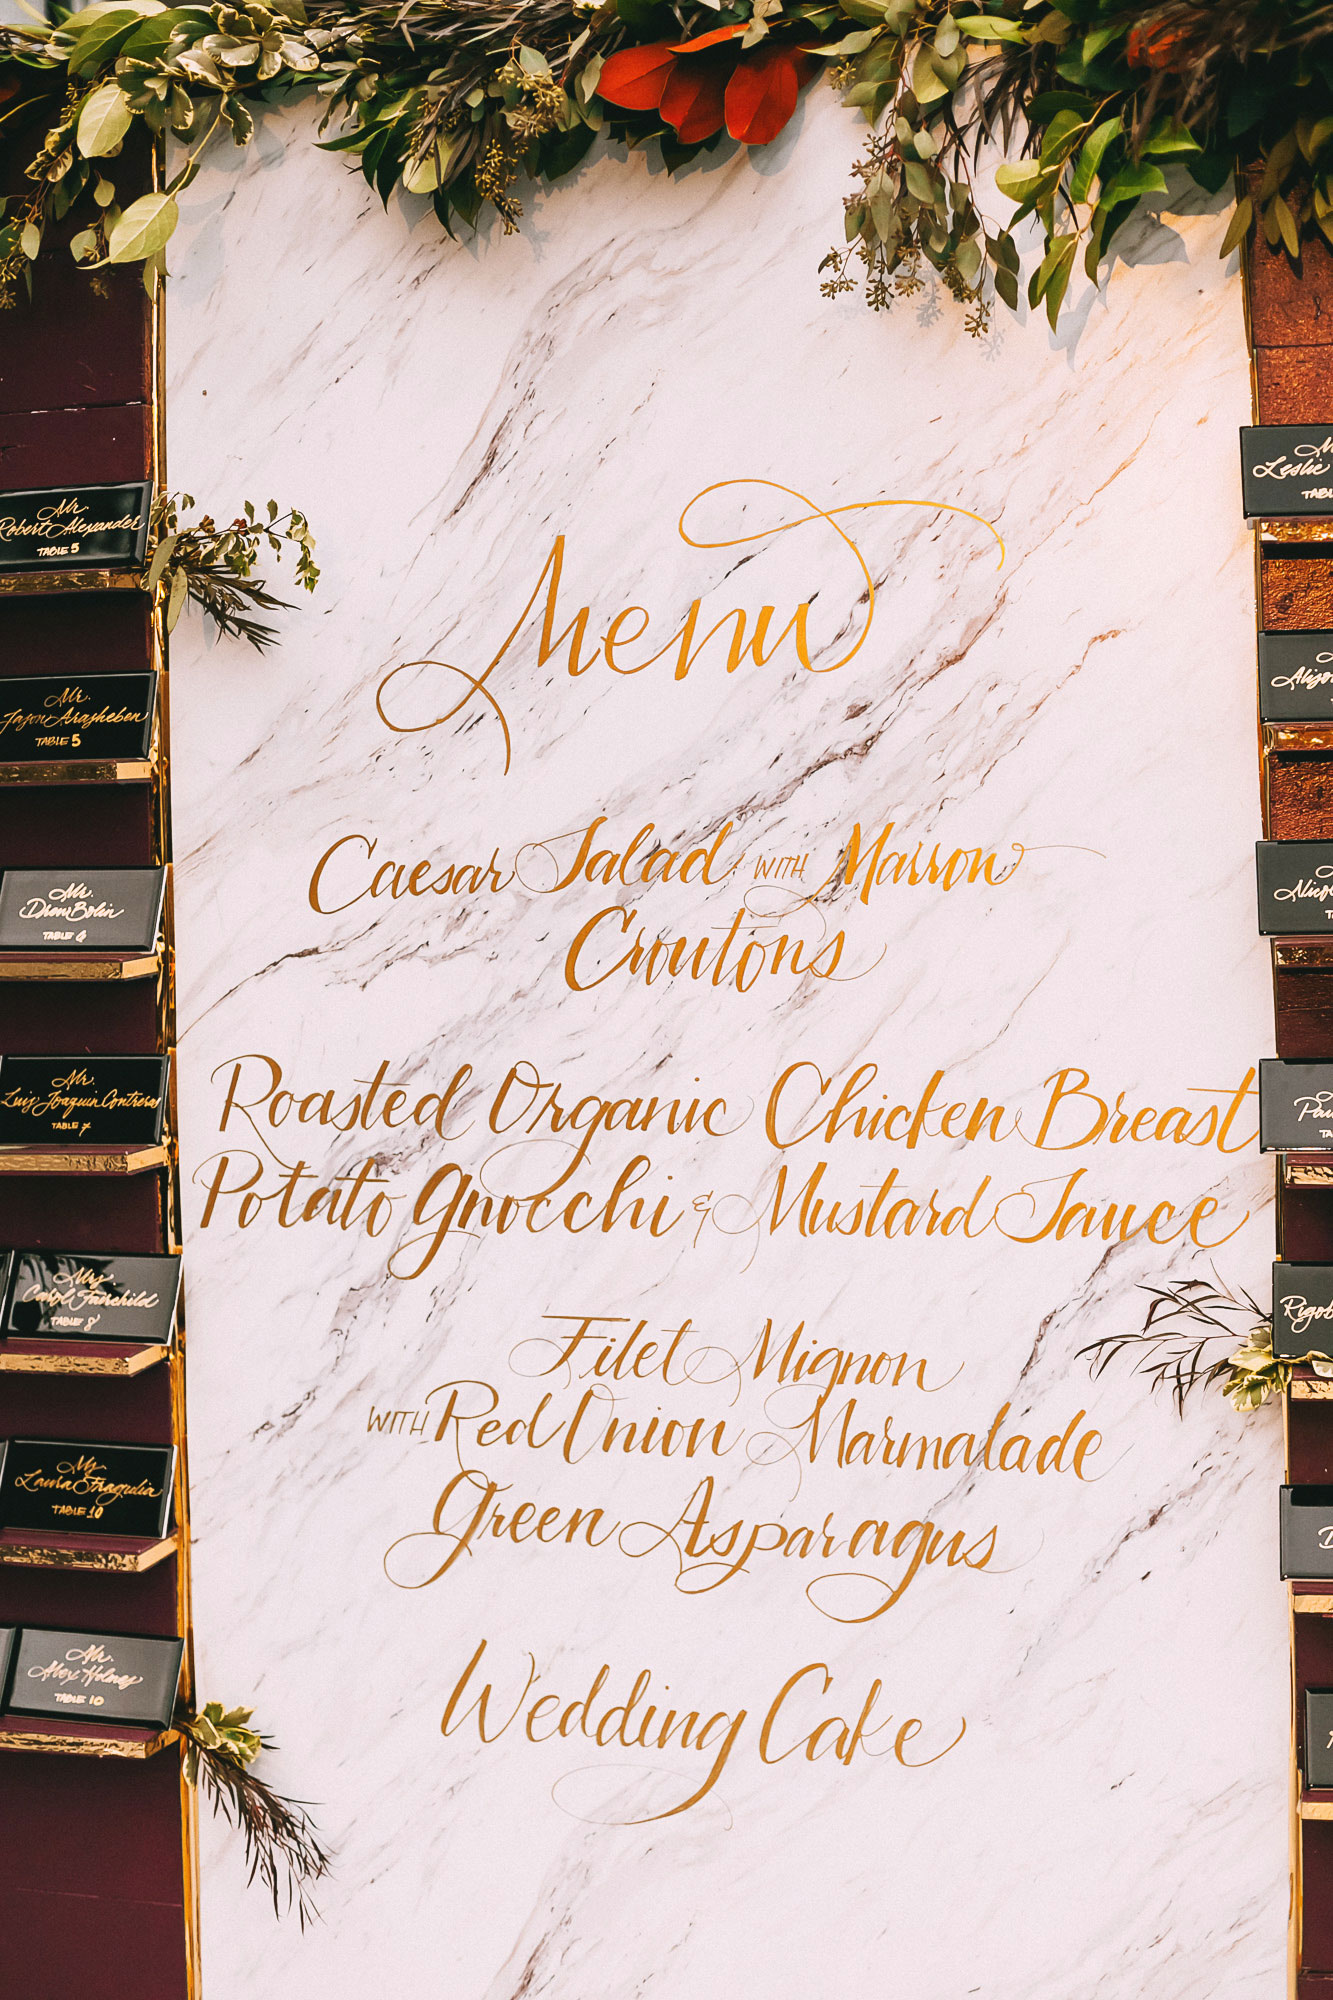 Wedding menu design on wall outdoor wedding